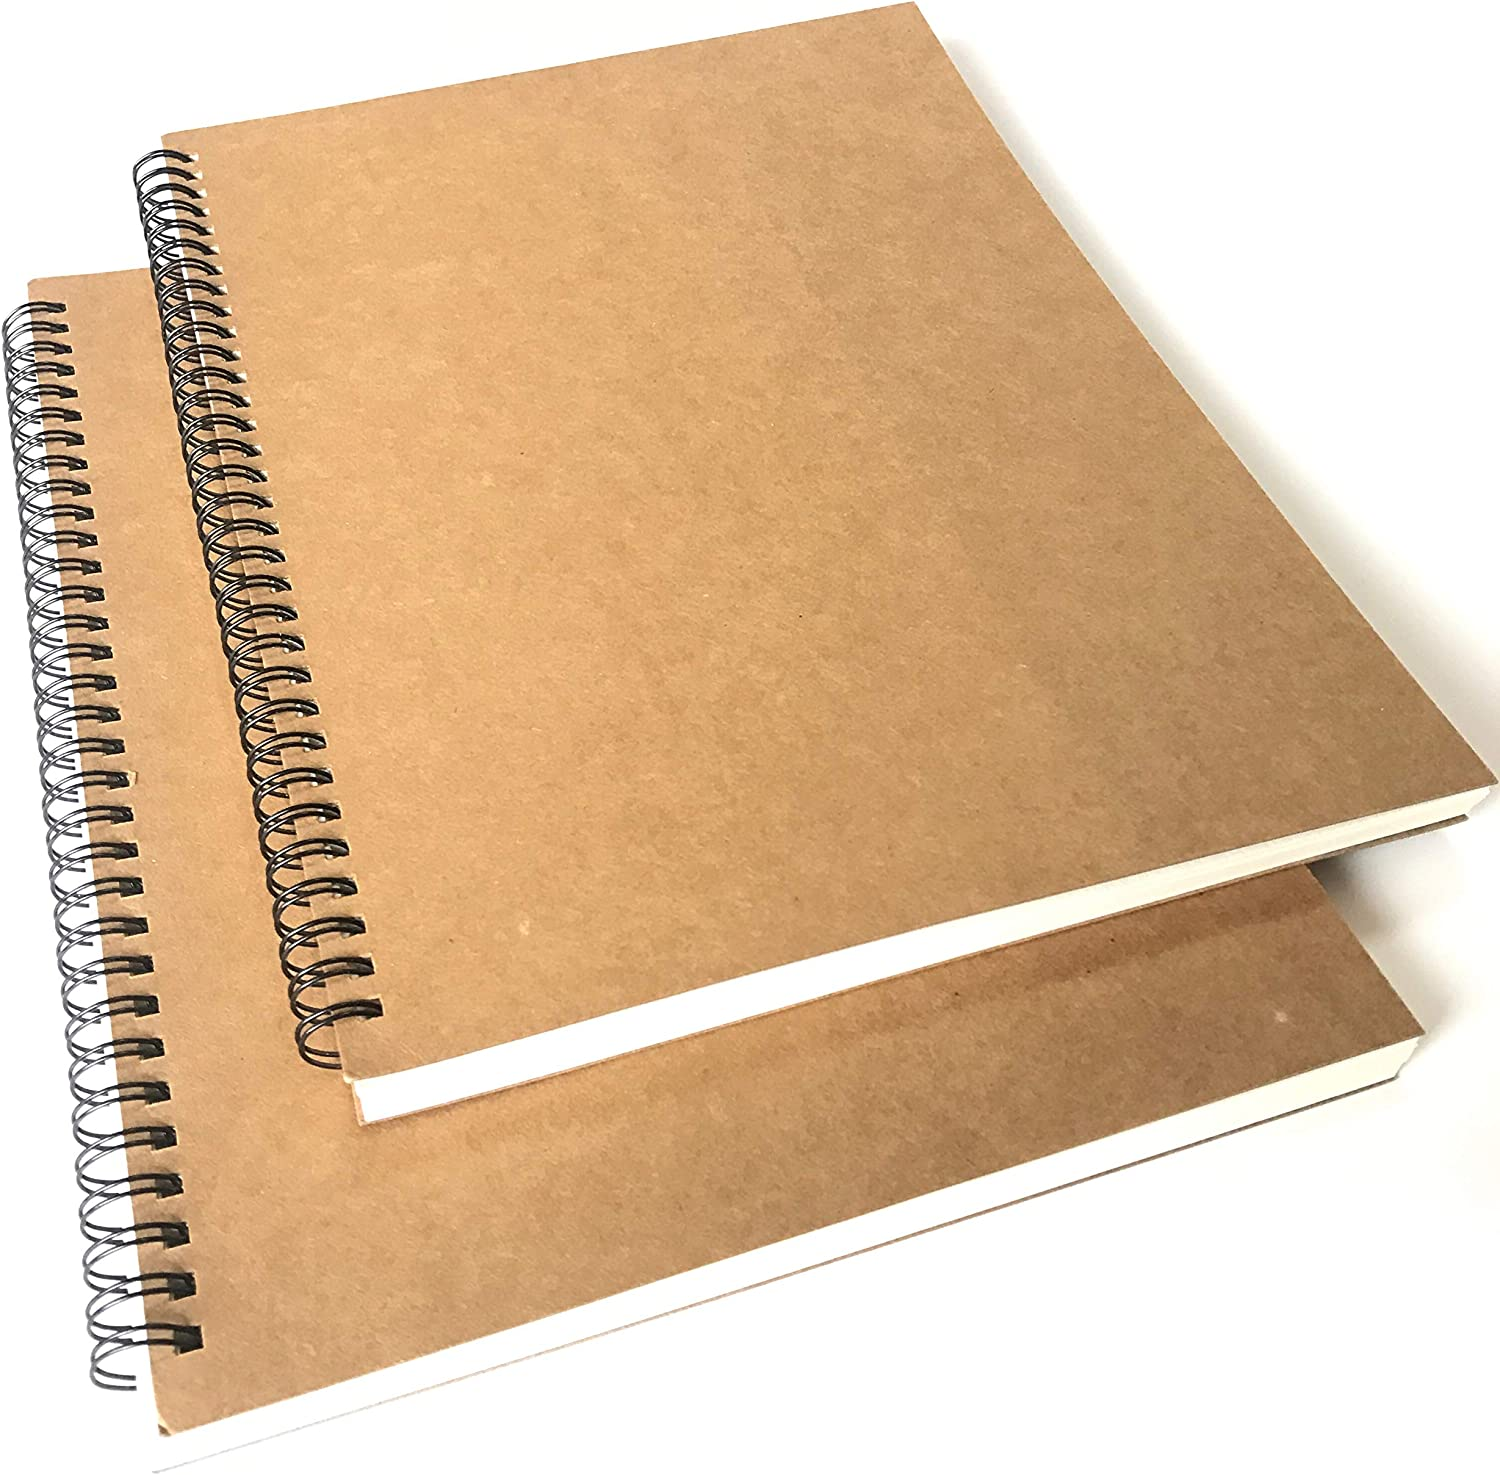 Year-end annual account VEEPPO A4 Spring new work B5 Big Thick Spiral and Notebooks Bound Bulk Journals